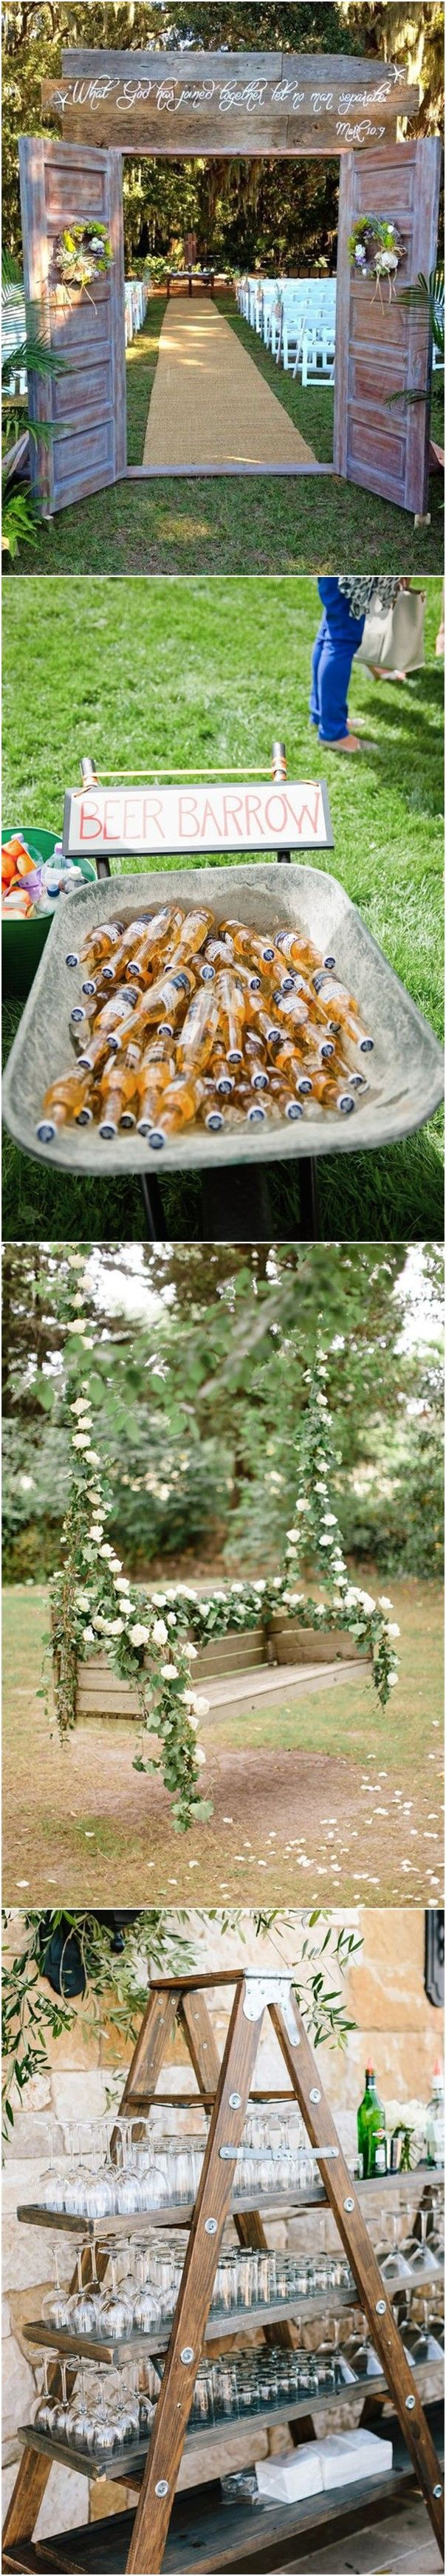 Best 25 rustic backyard ideas on pinterest picnic for Backyard wedding decoration ideas on a budget